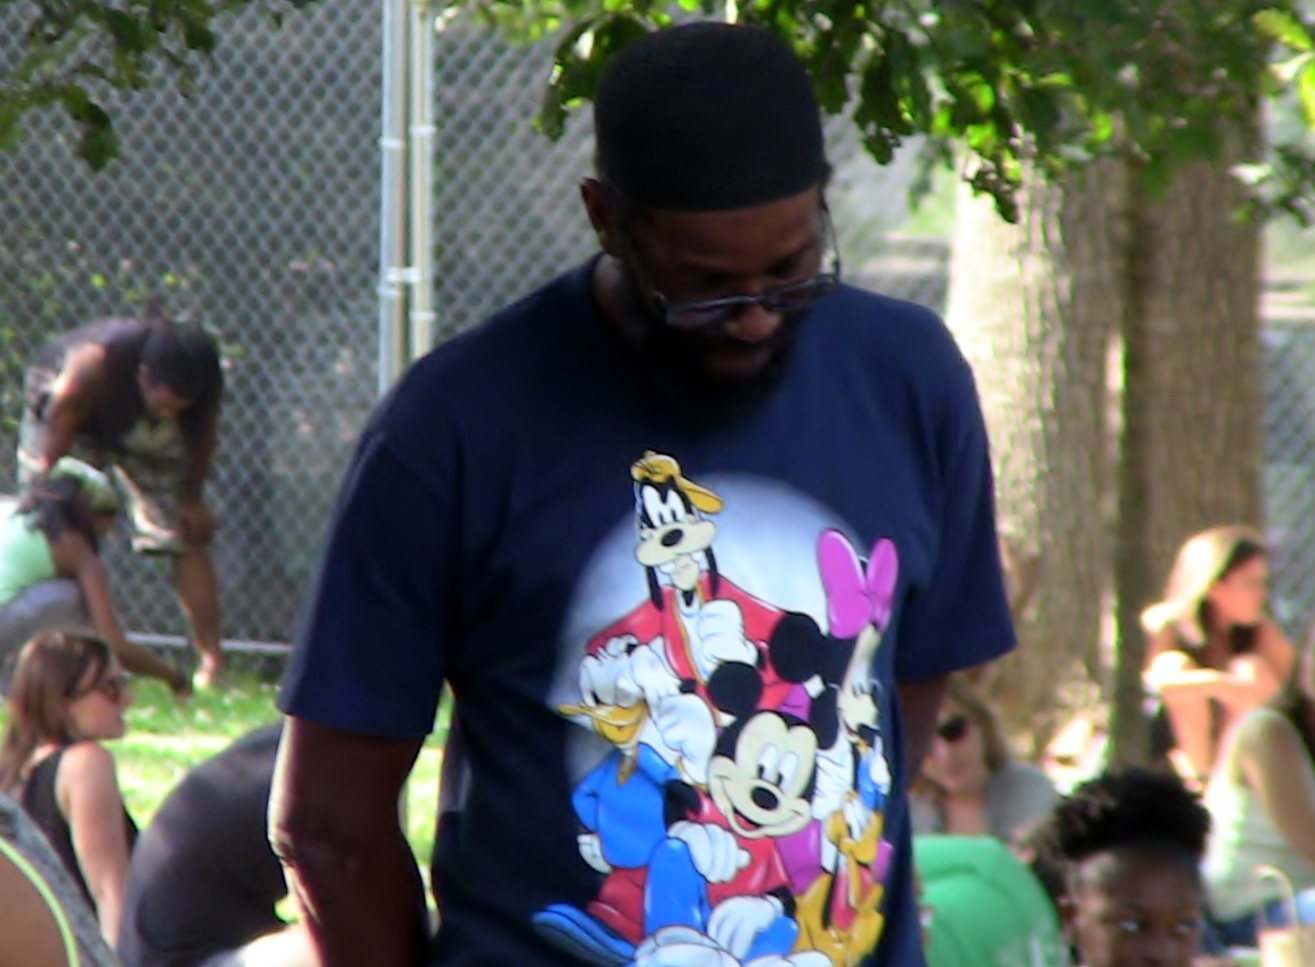 guy with cartoon tee